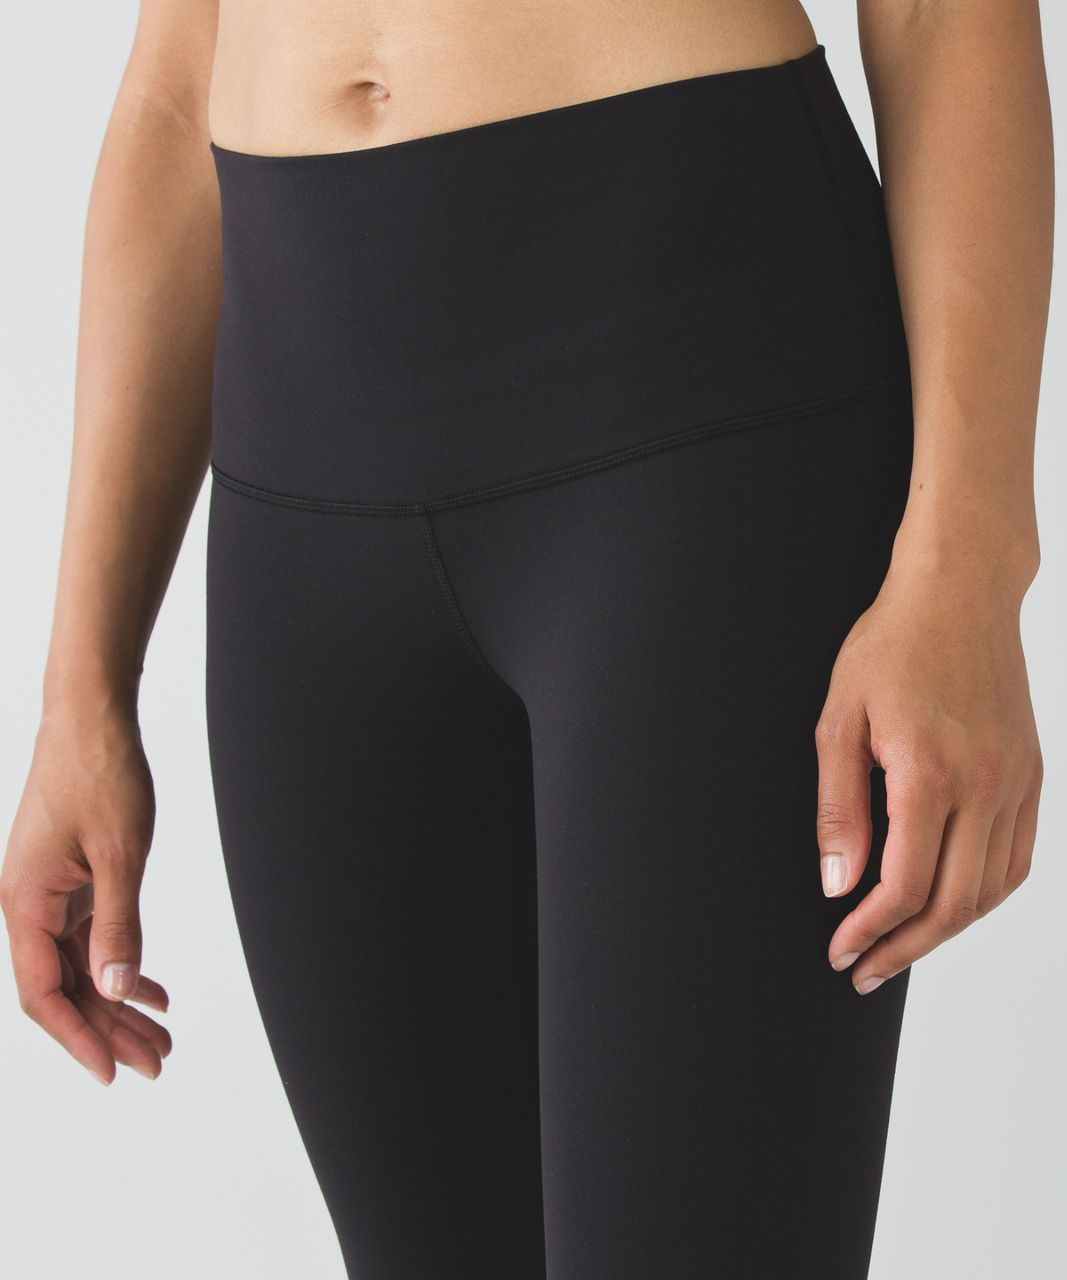 "Lululemon Wunder Under Crop (Hi-Rise) (21 1/2"") - Black"